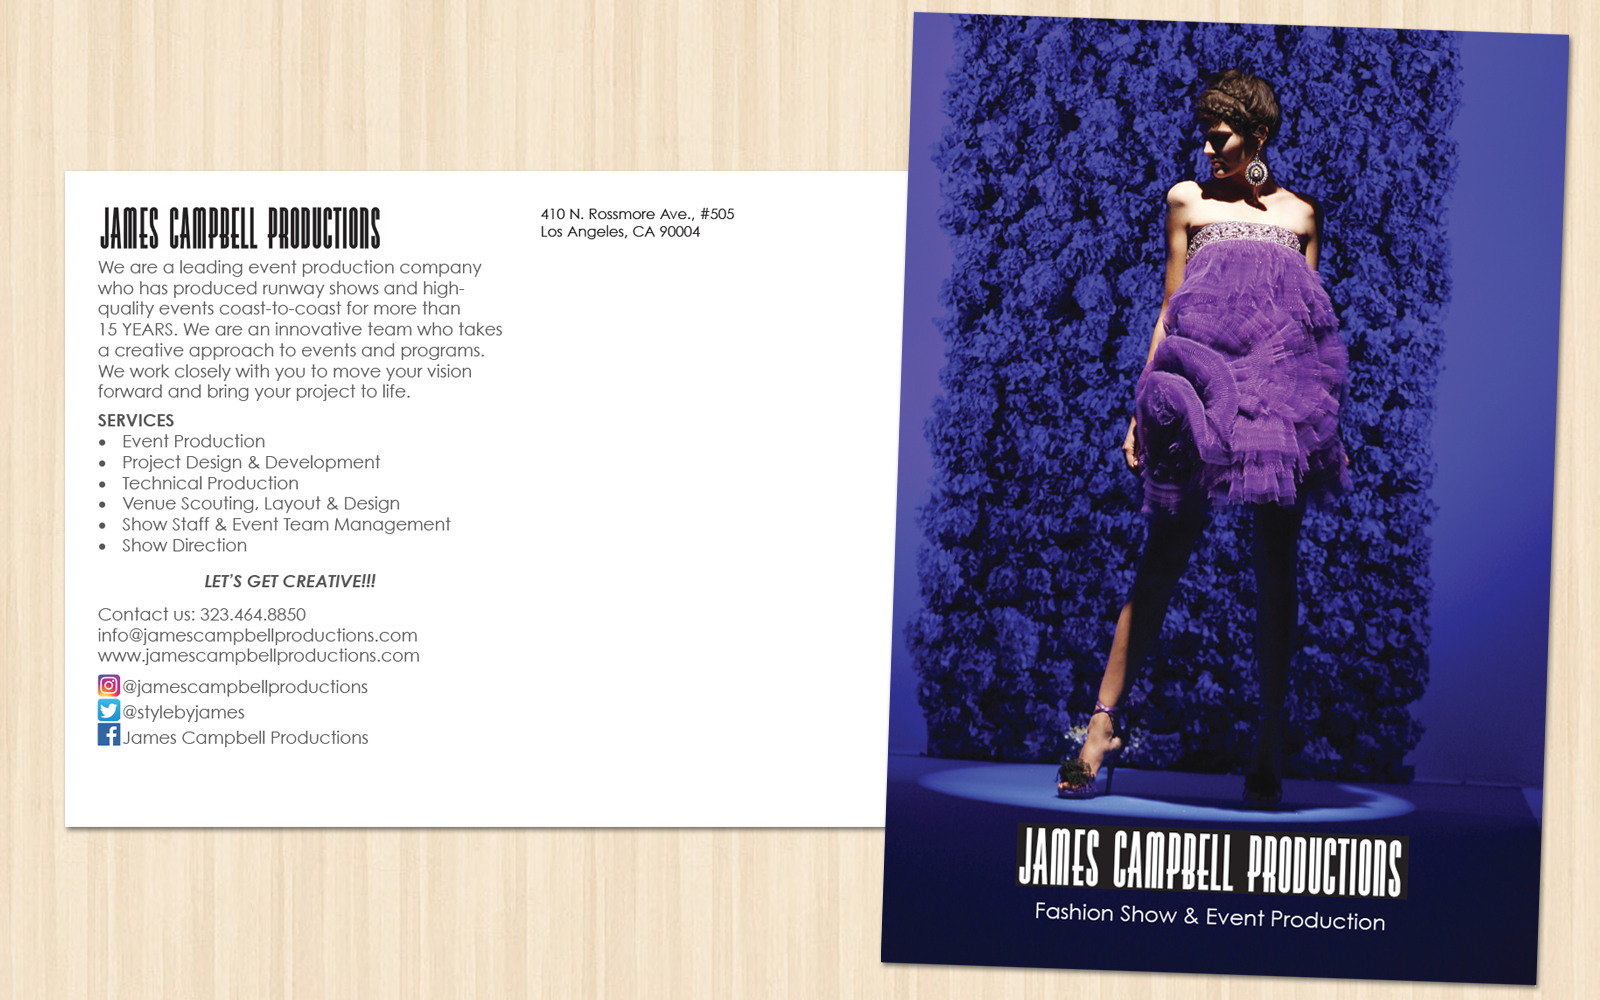 James Campbell Productions Postcard